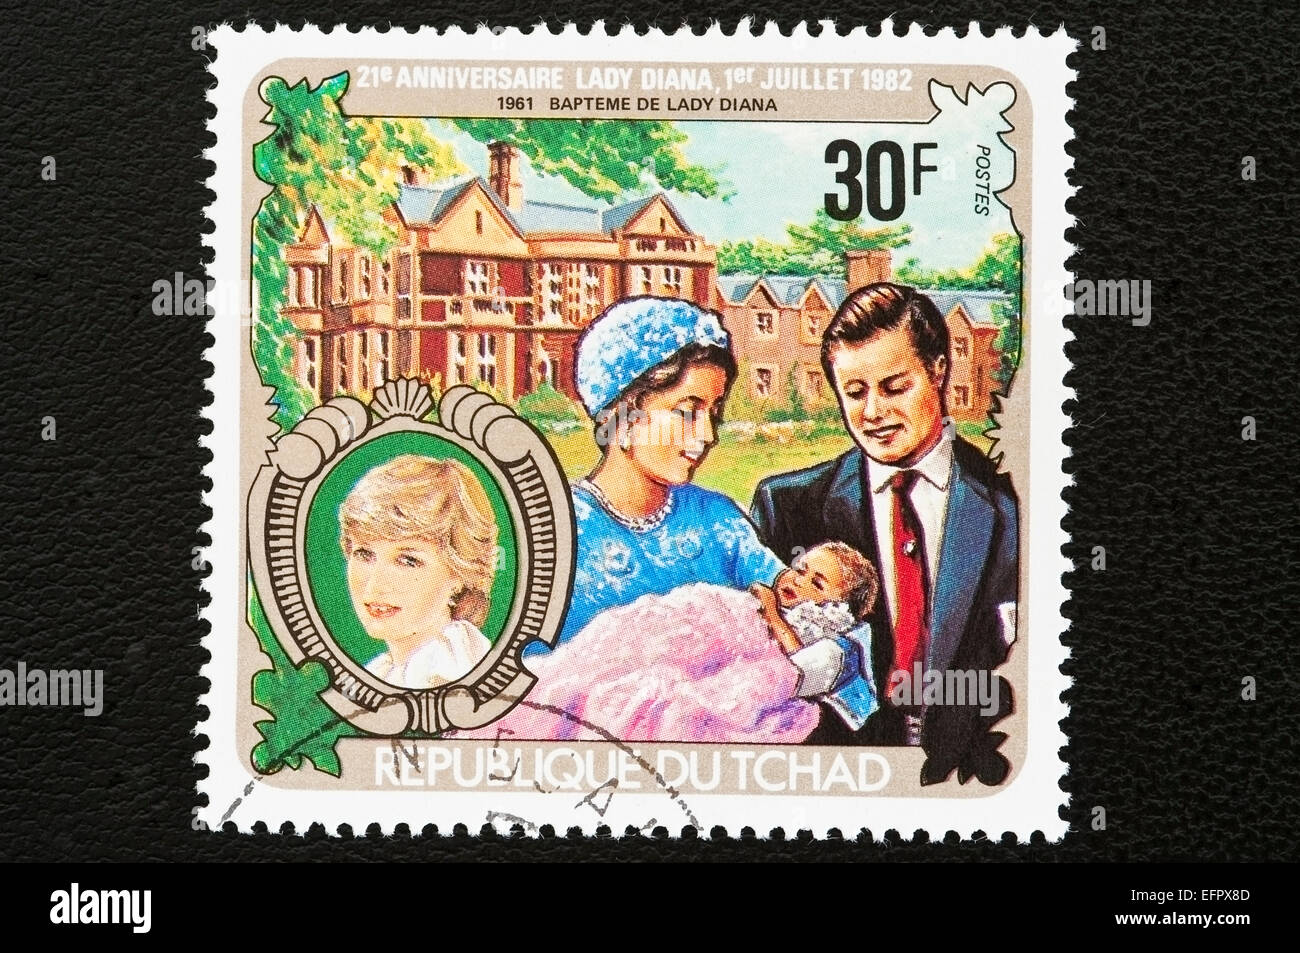 Republic of Chad issued postal stamps for the 21st anniversary of Lady Diana. Republic of Chad is in Central Africa. - Stock Image